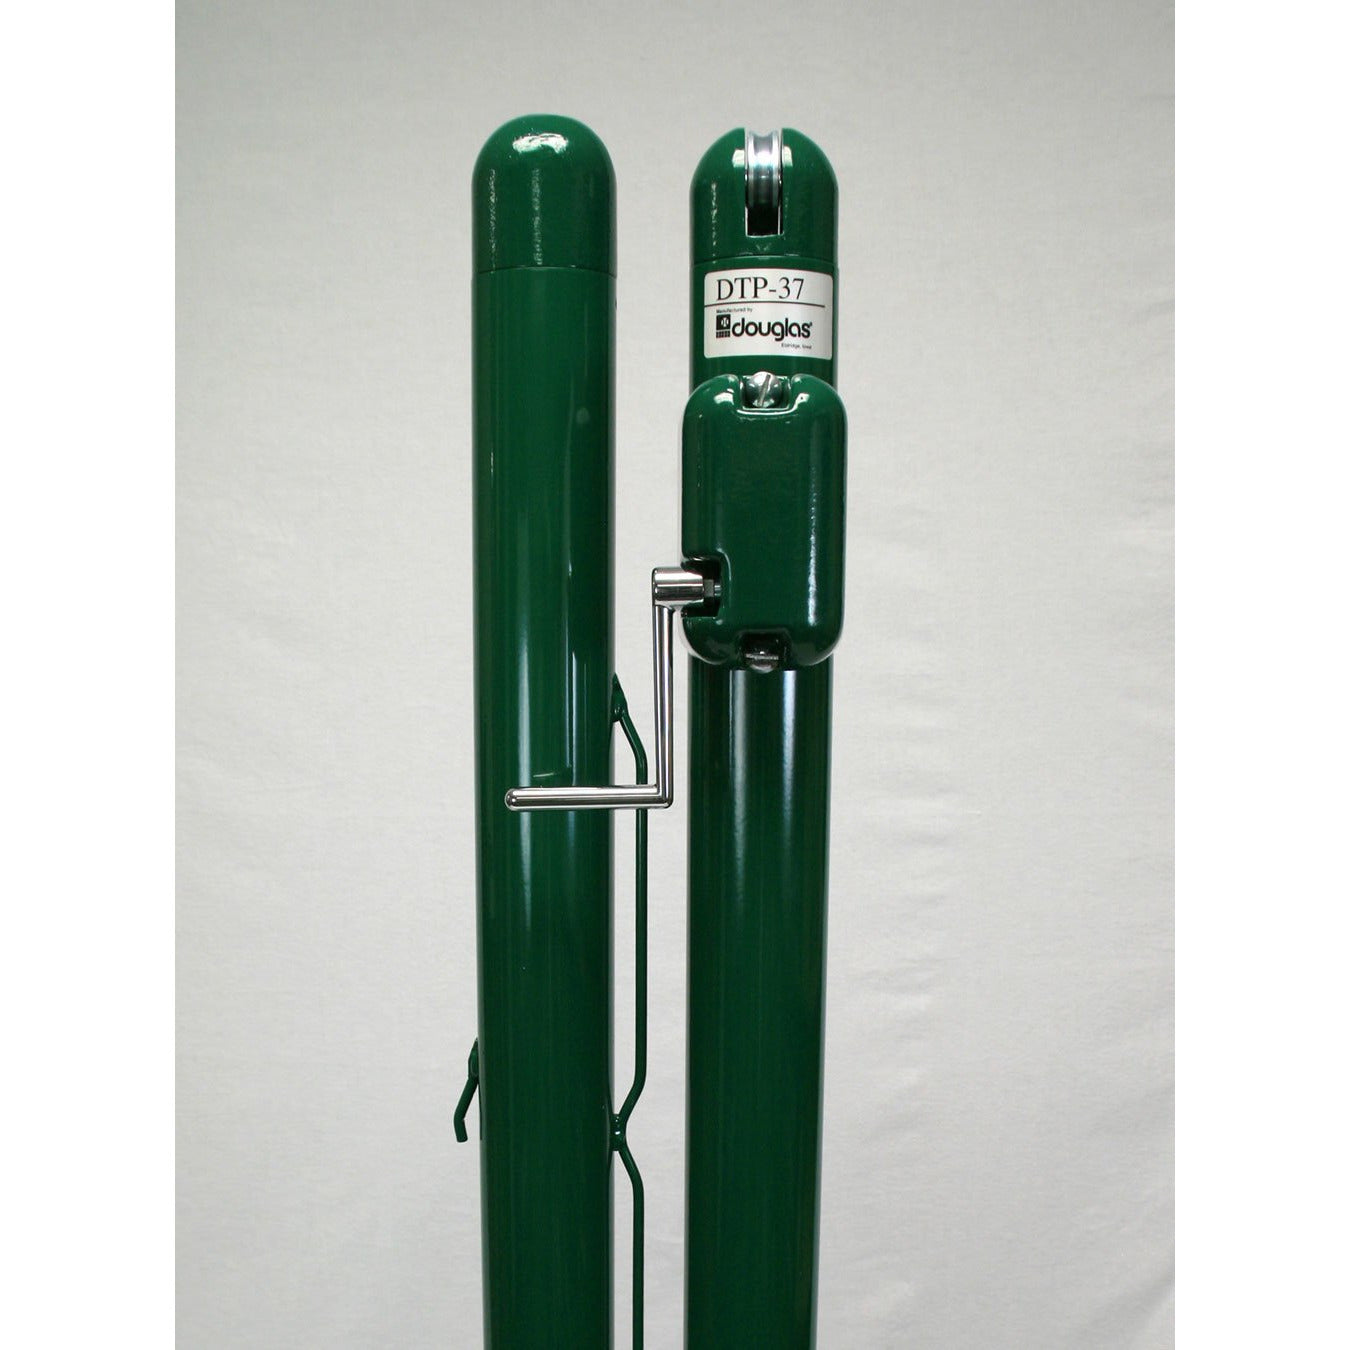 Douglas DTP-37 Tennis Posts, 3″ OD Green